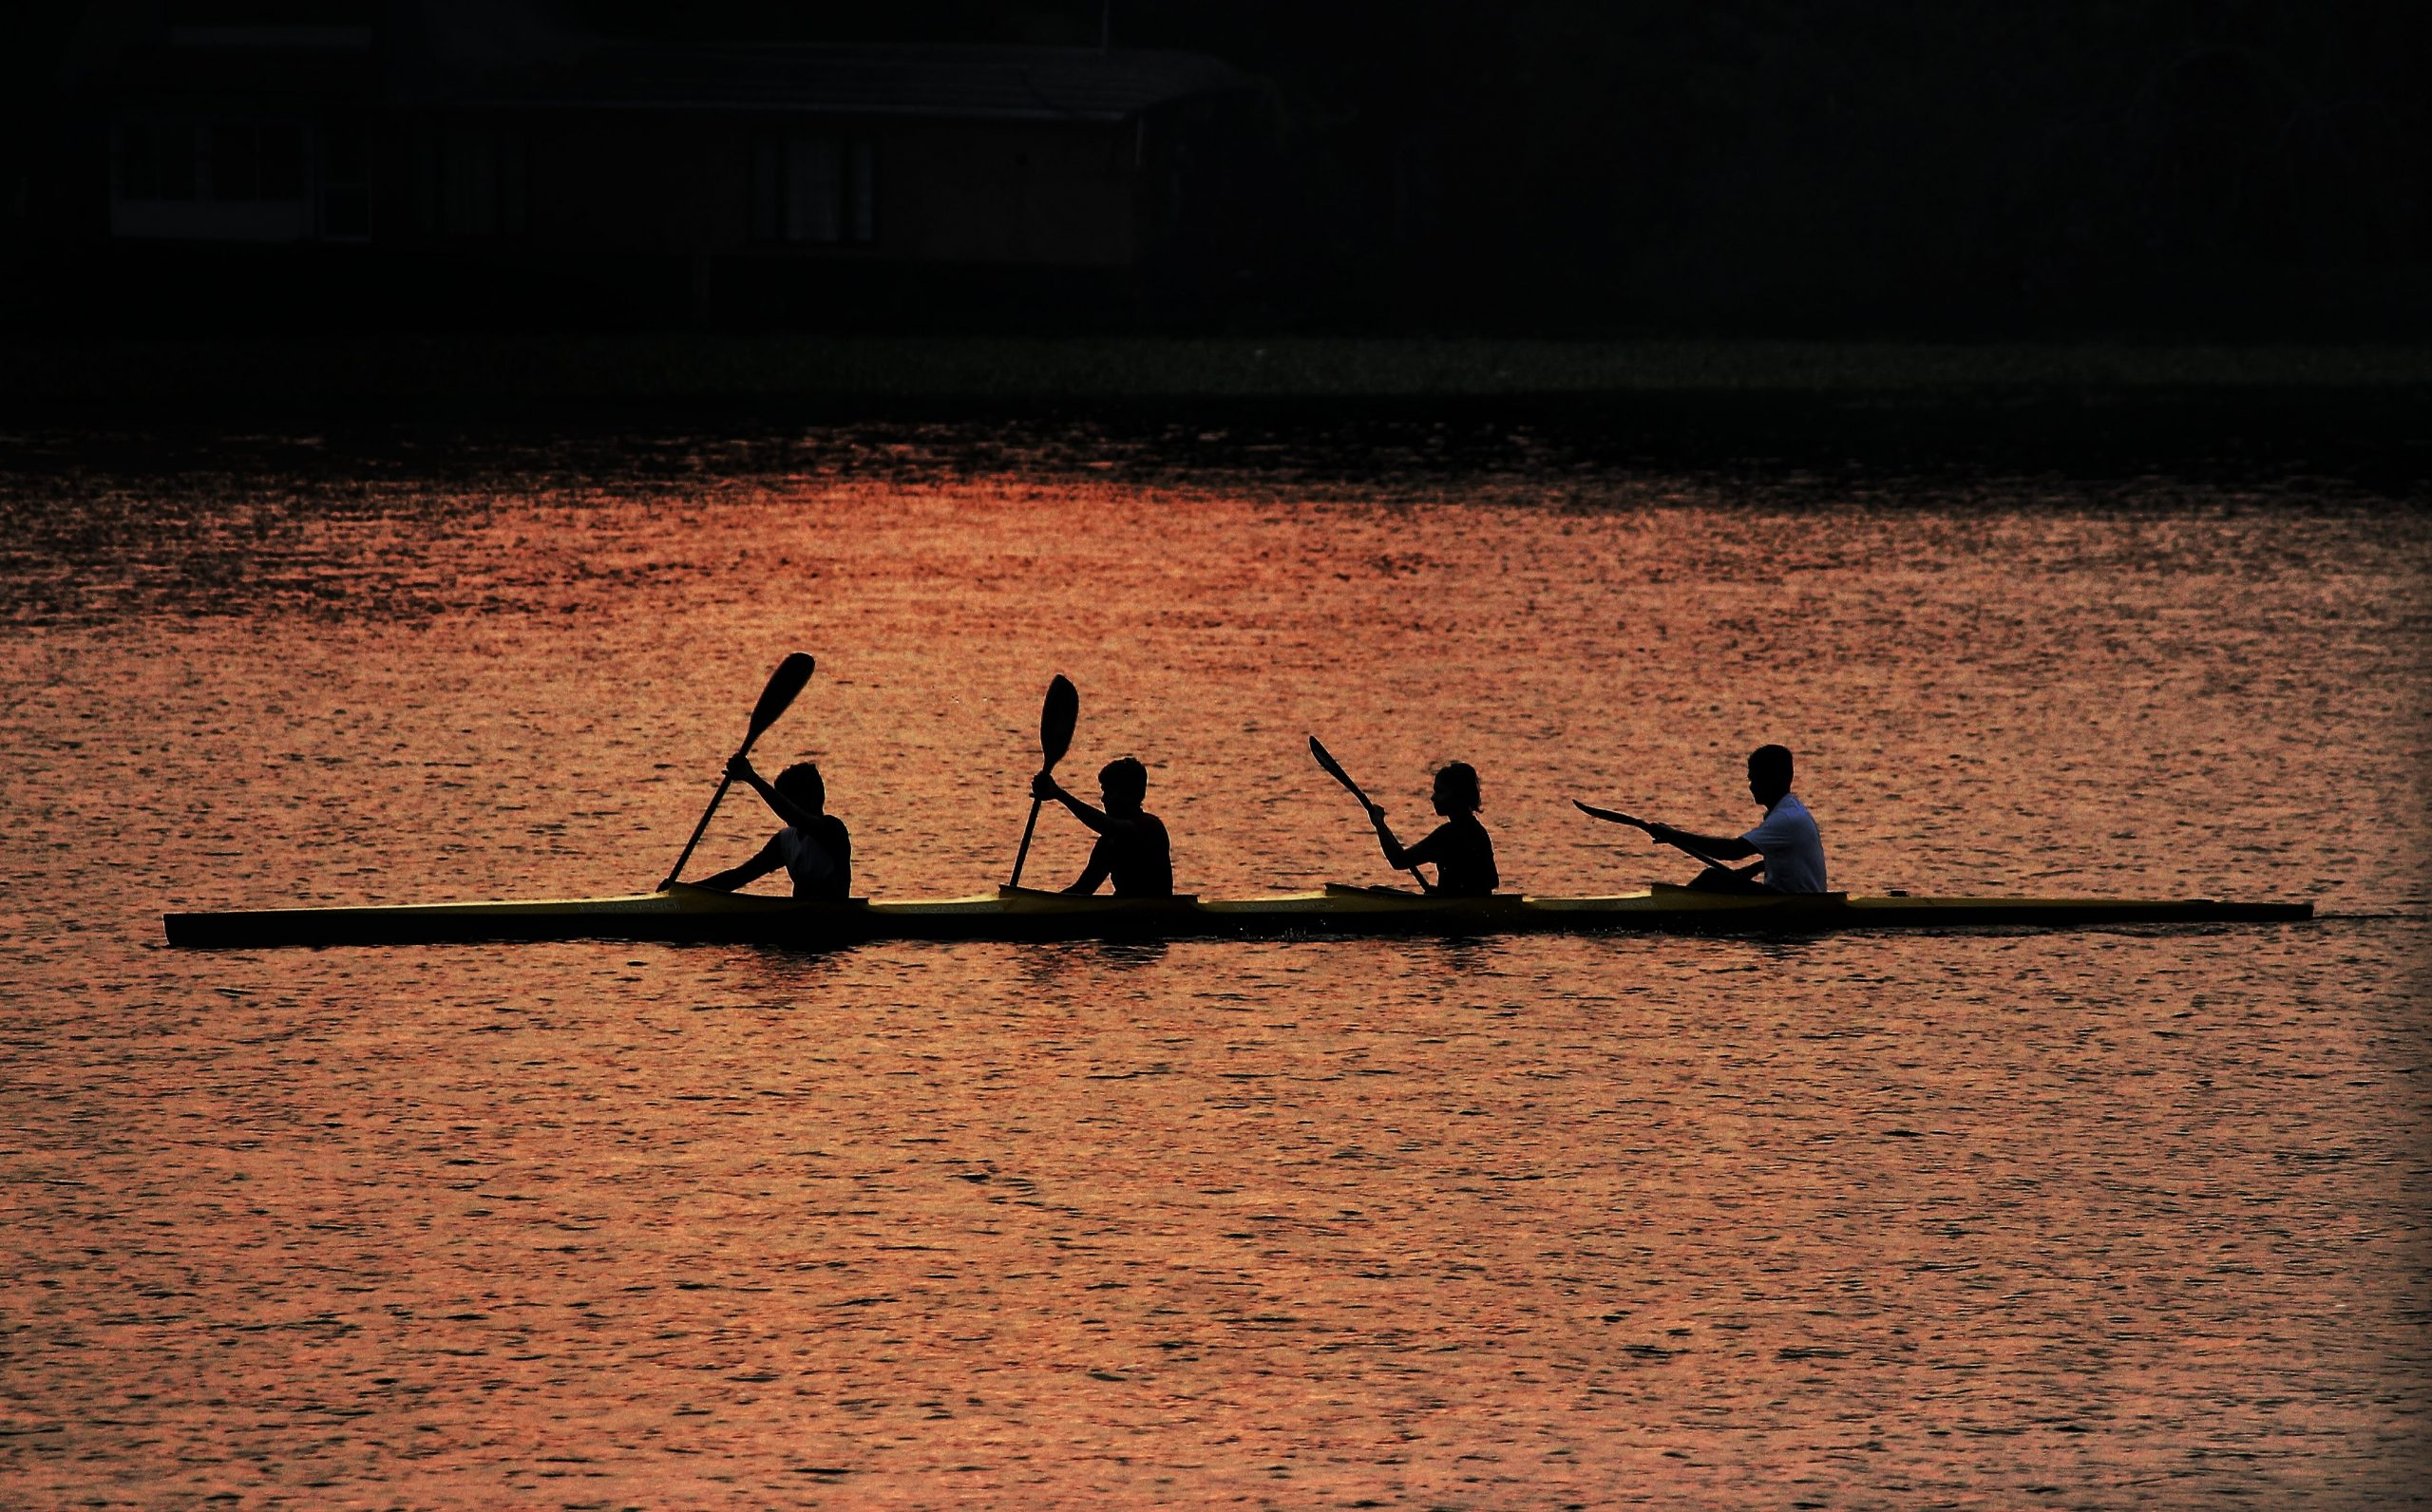 Men rowing a boat with oars